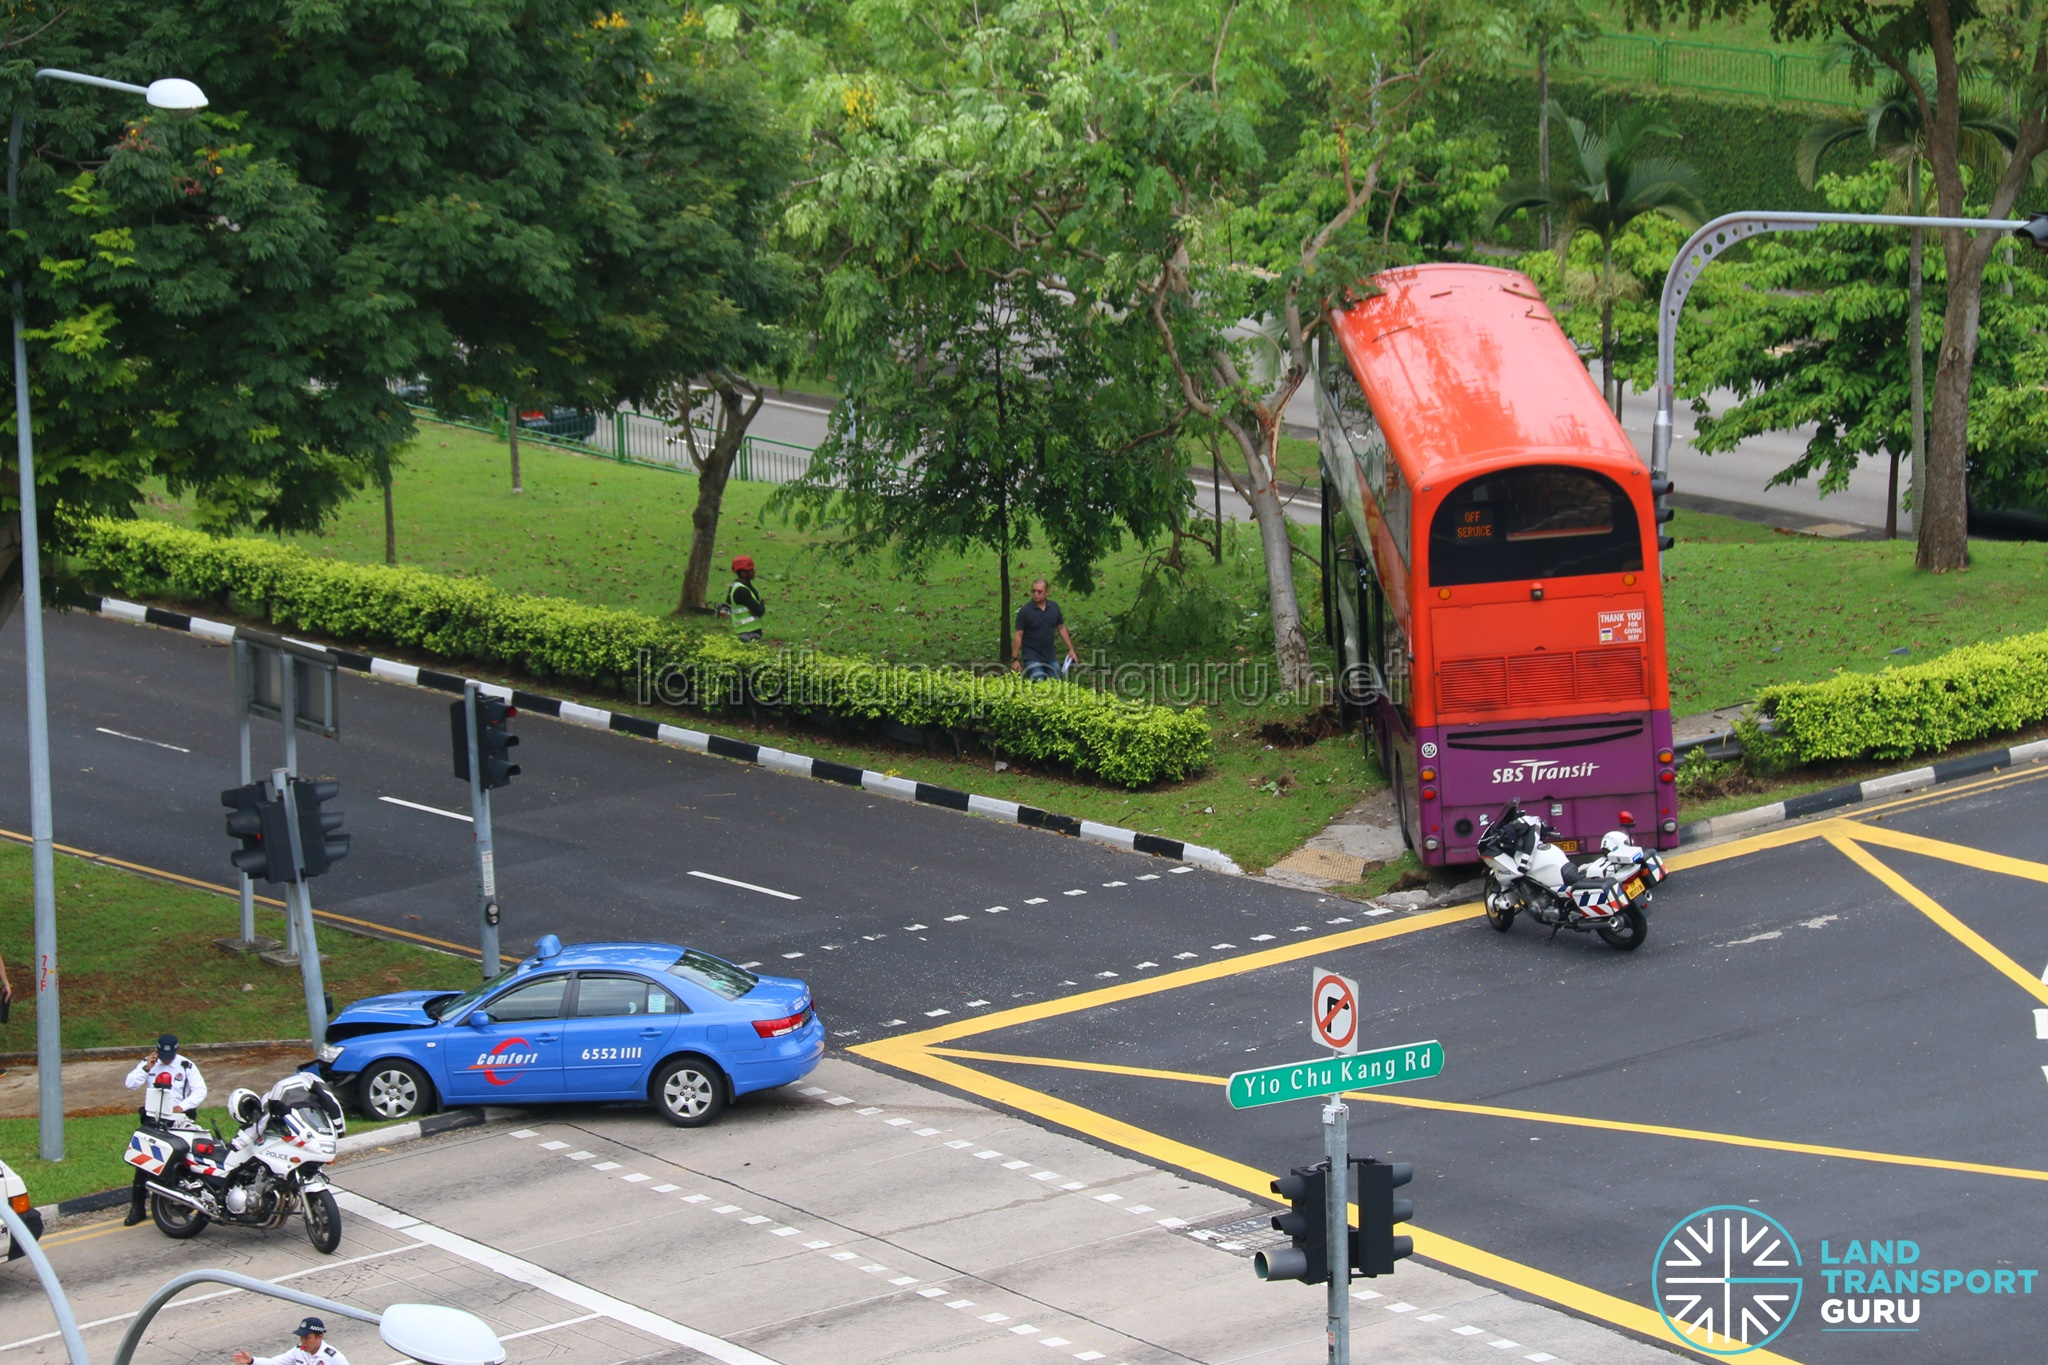 Overhead View Of Accident Site The Bus Stopped Metres Away From A Steep Embankment